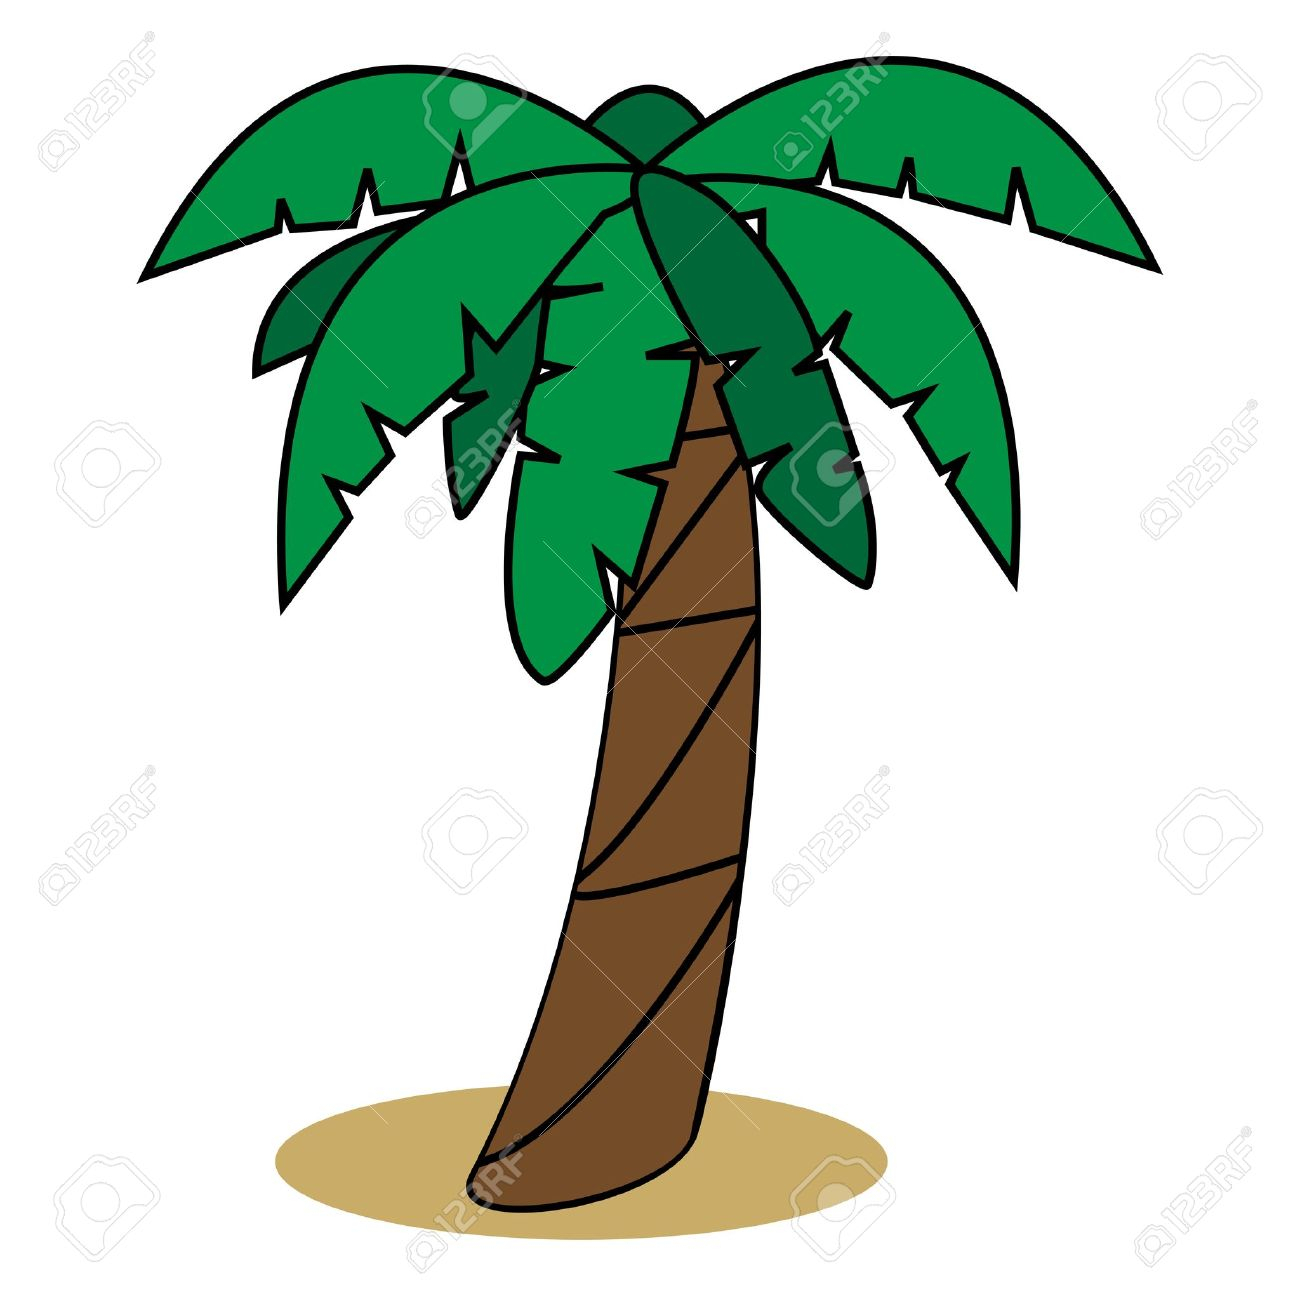 1300x1300 Palm Tree Cartoon Drawing Graphic Illustration Of Palm Tree